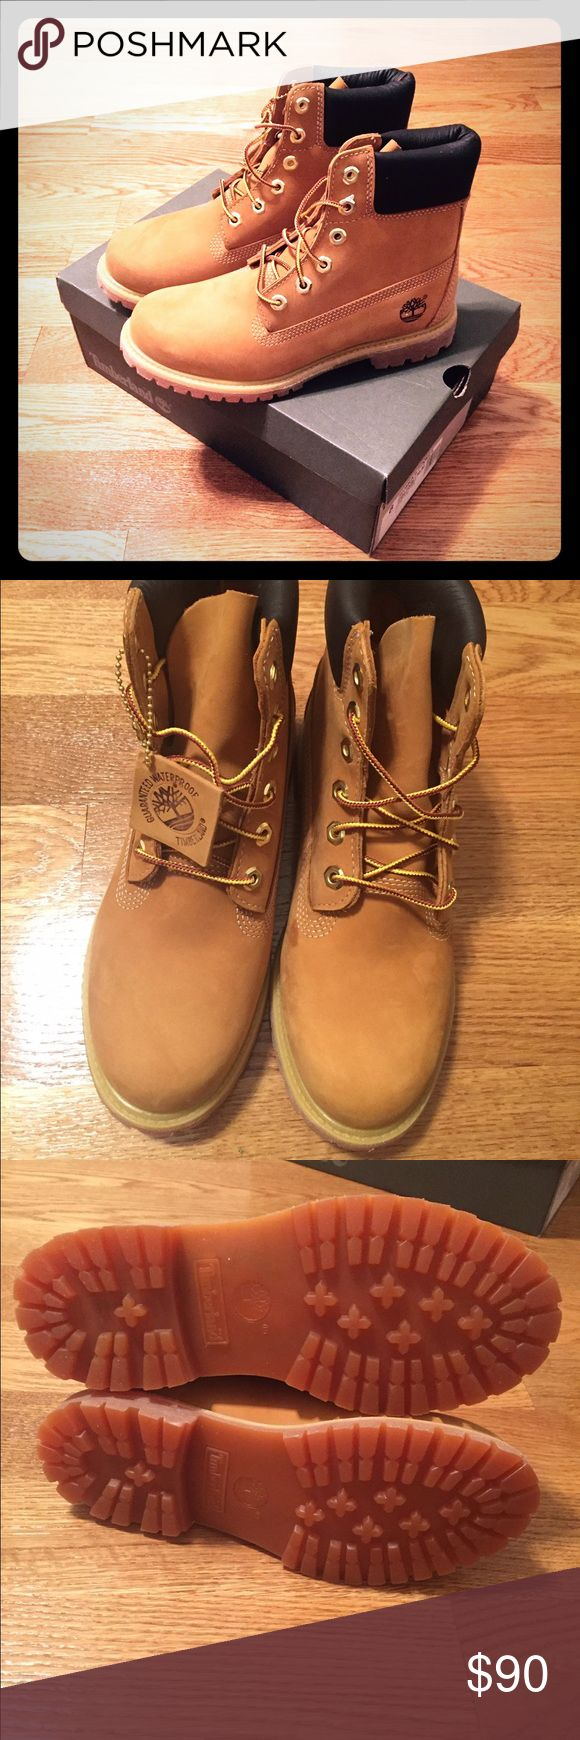 Women's Timberland classic boots (new with tags) Timberland boots, women's size 8, classic wheat color, new with tags - never worn Timberland Shoes Lace Up Boots